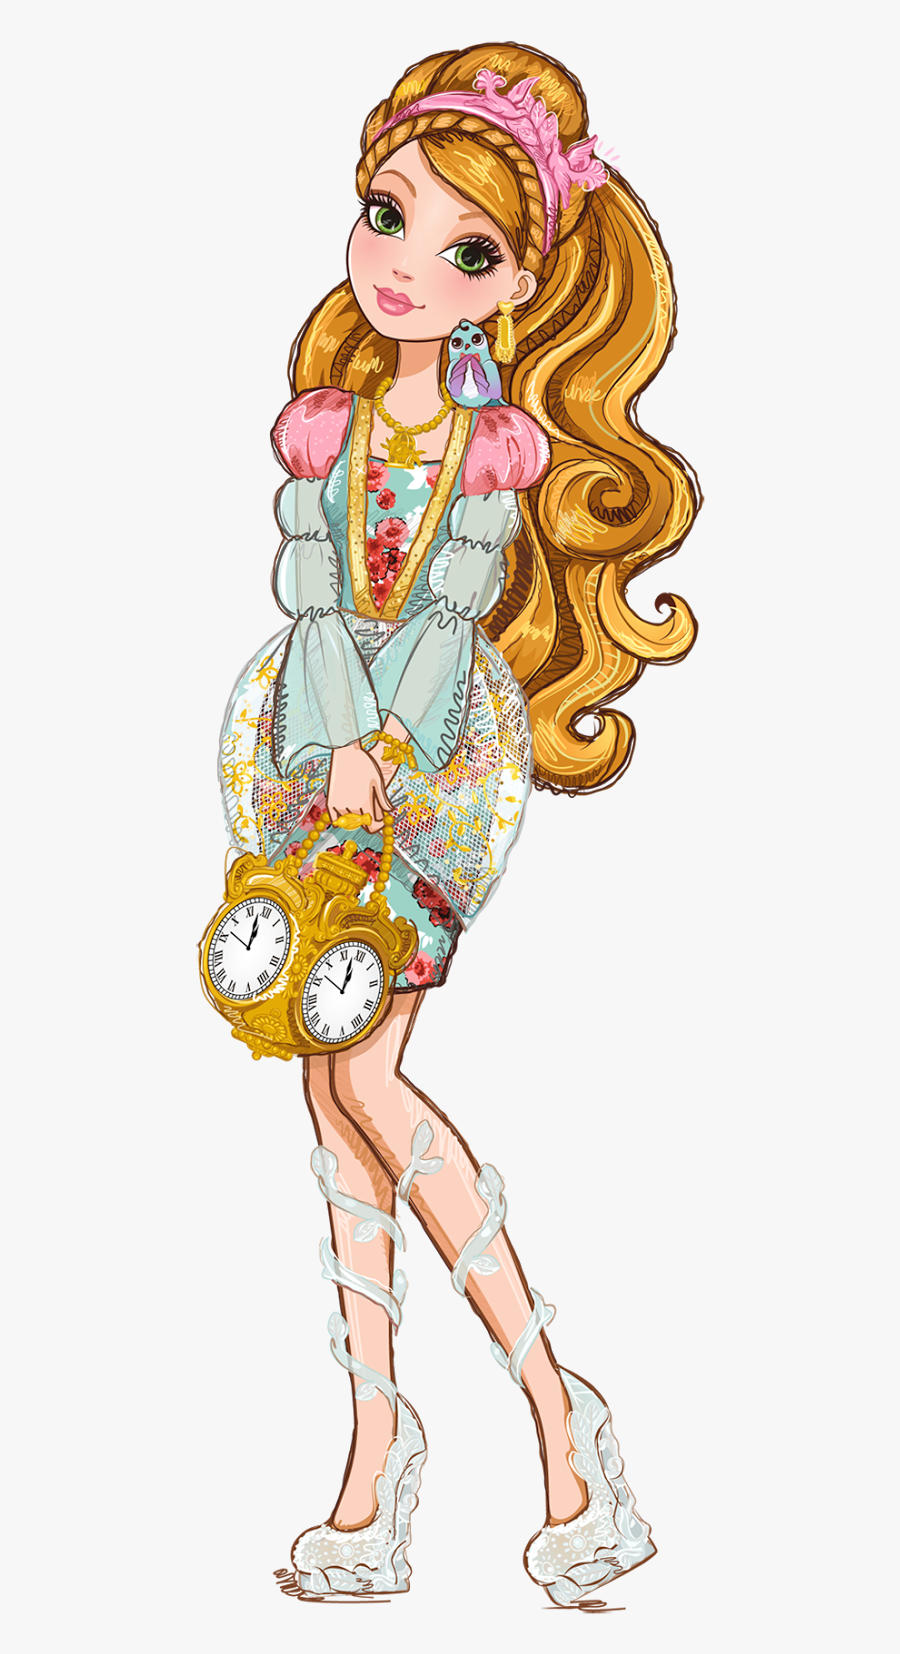 Character Ever After High, Transparent Clipart